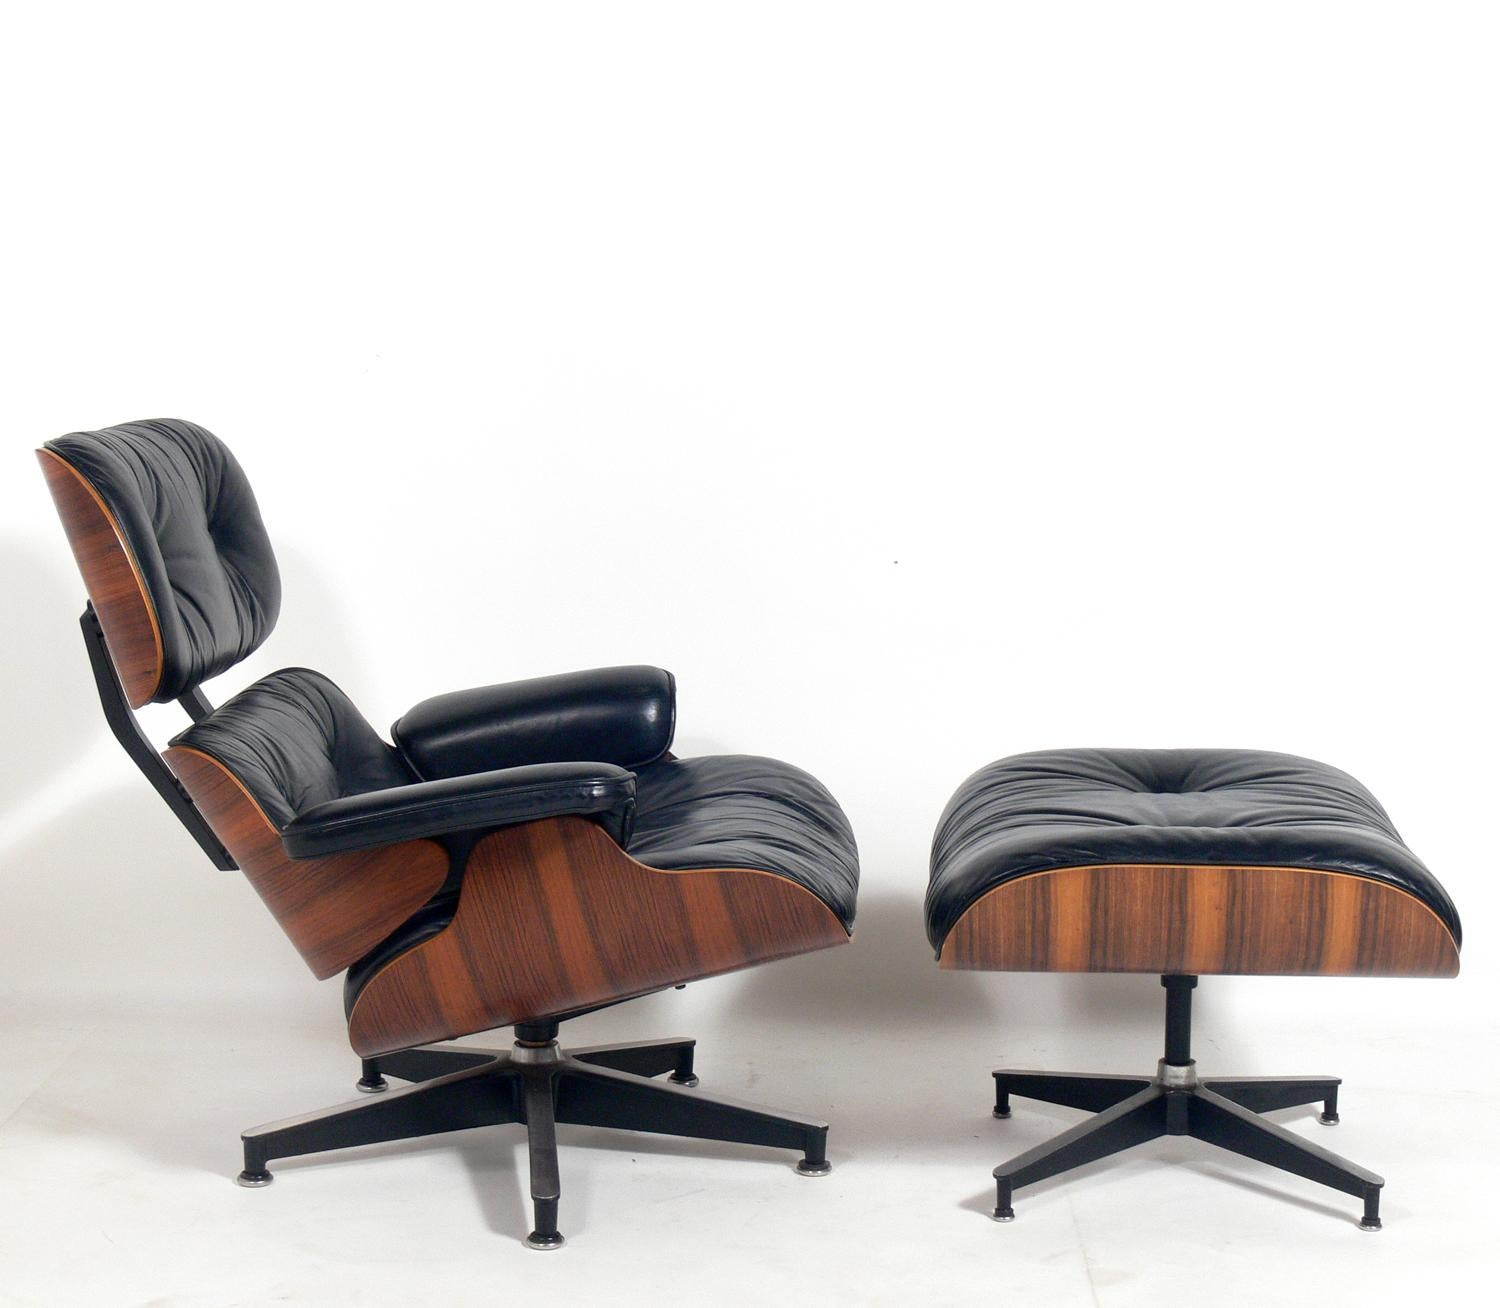 Miraculous Rosewood Eames Lounge Chair And Ottoman For Herman Miller Inzonedesignstudio Interior Chair Design Inzonedesignstudiocom